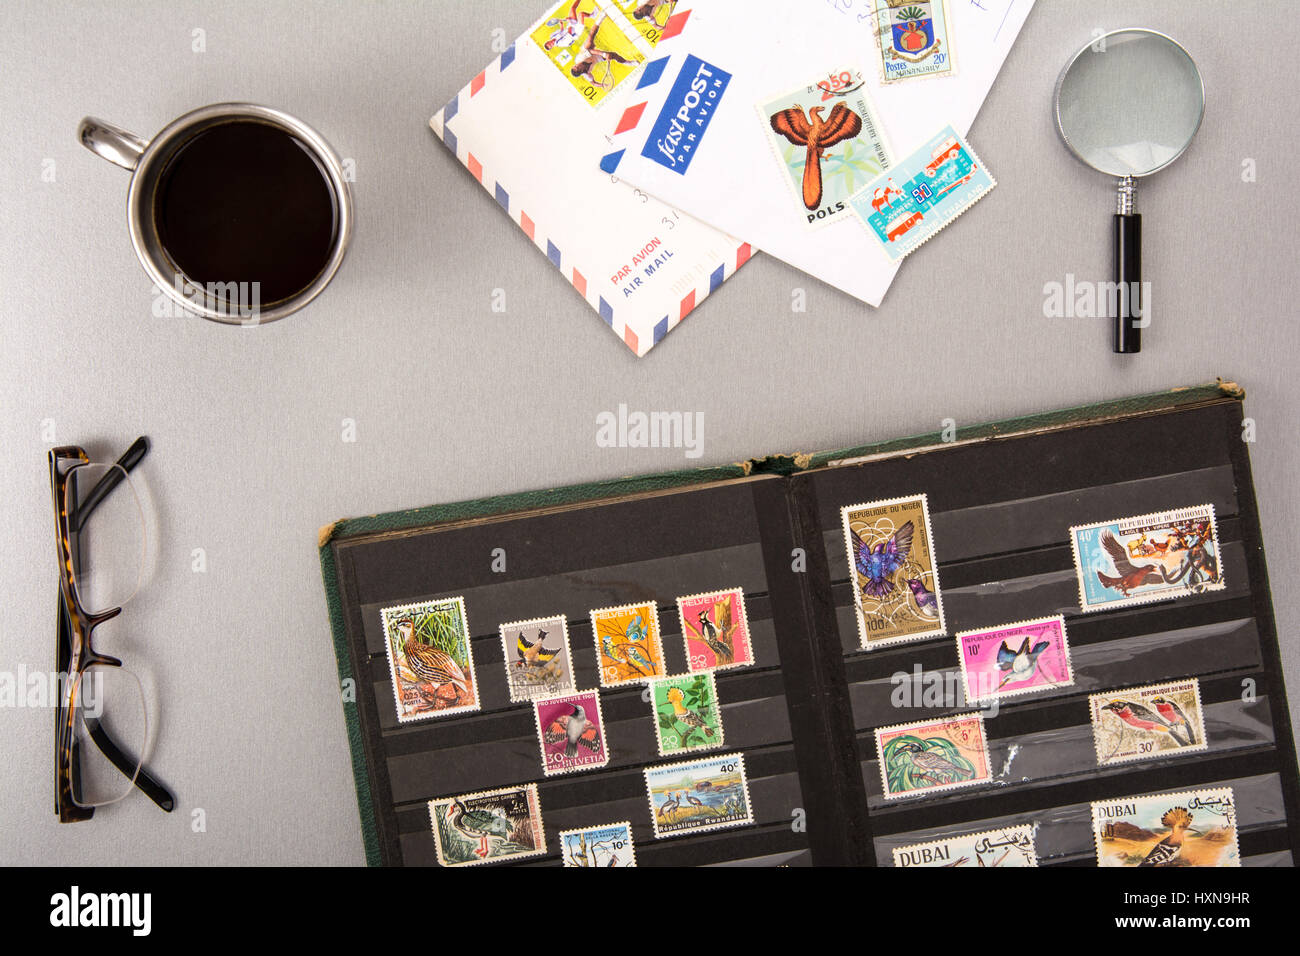 High angle view of a stamps collection with eyeglasses, a cup of coffee, a magnifier and letters - Stock Image